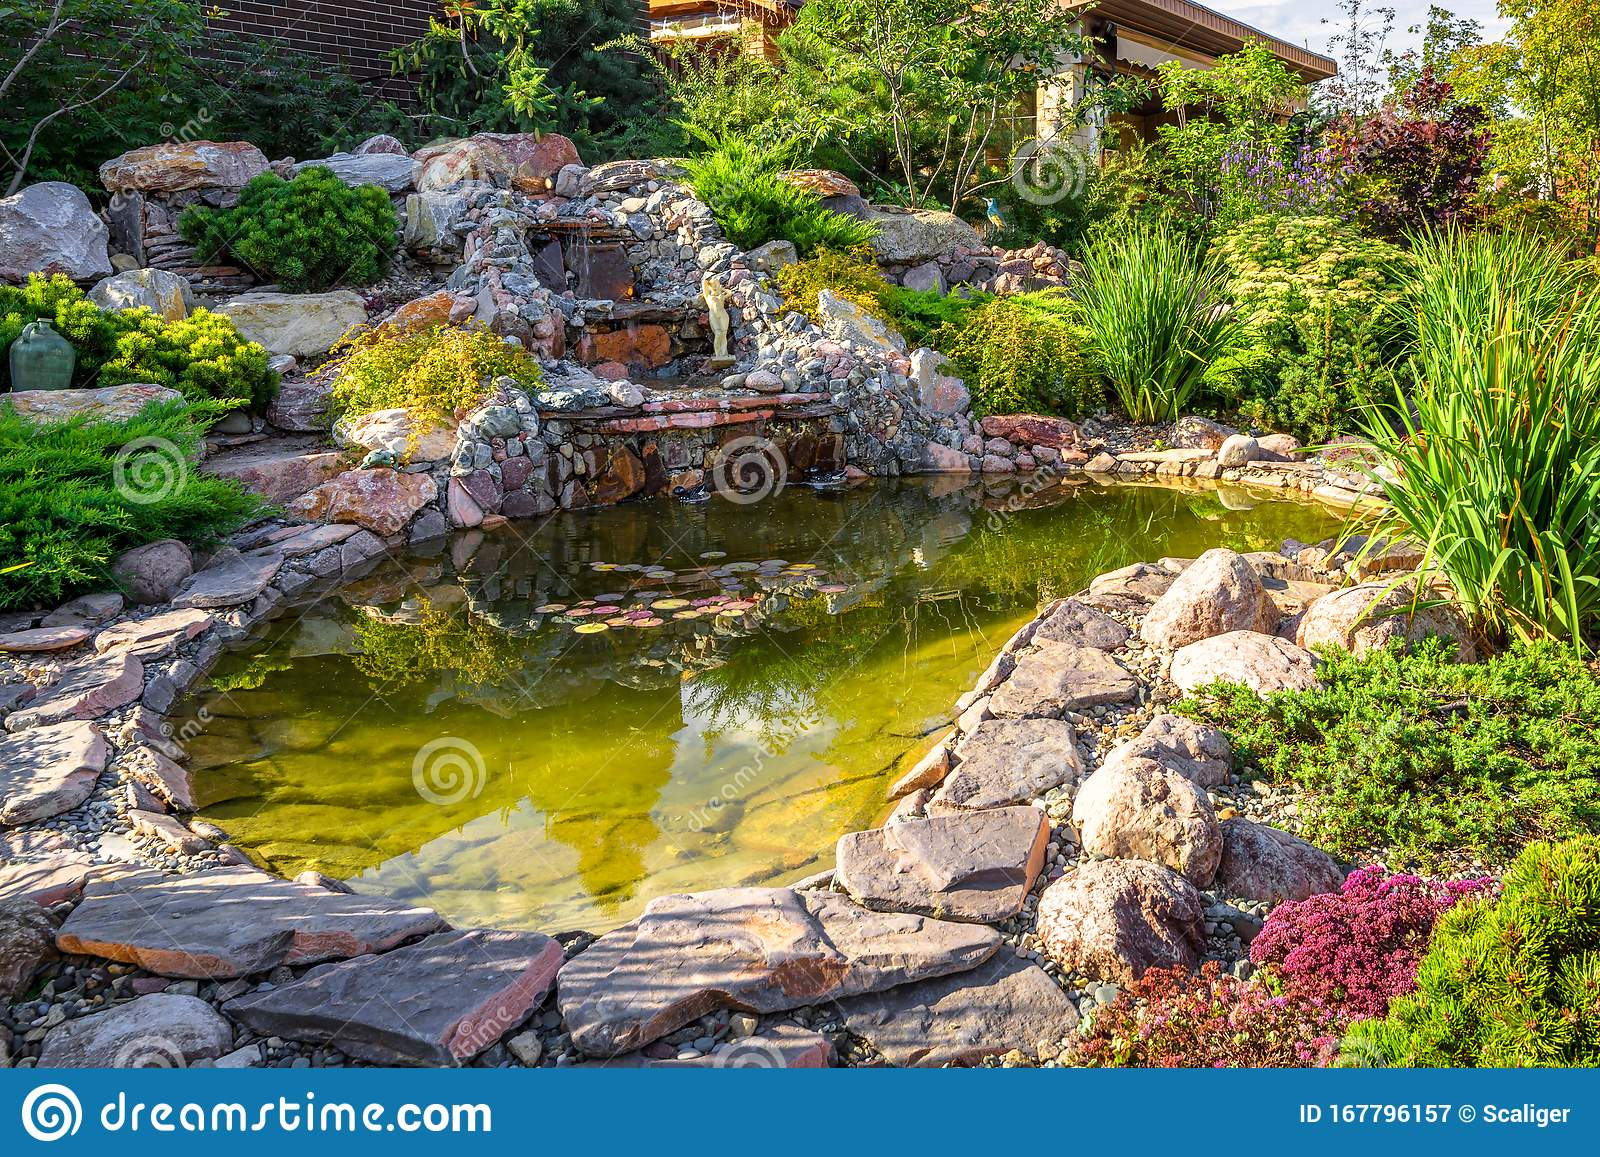 Landscape Design Of Home Garden Close Up Beautiful Landscaping